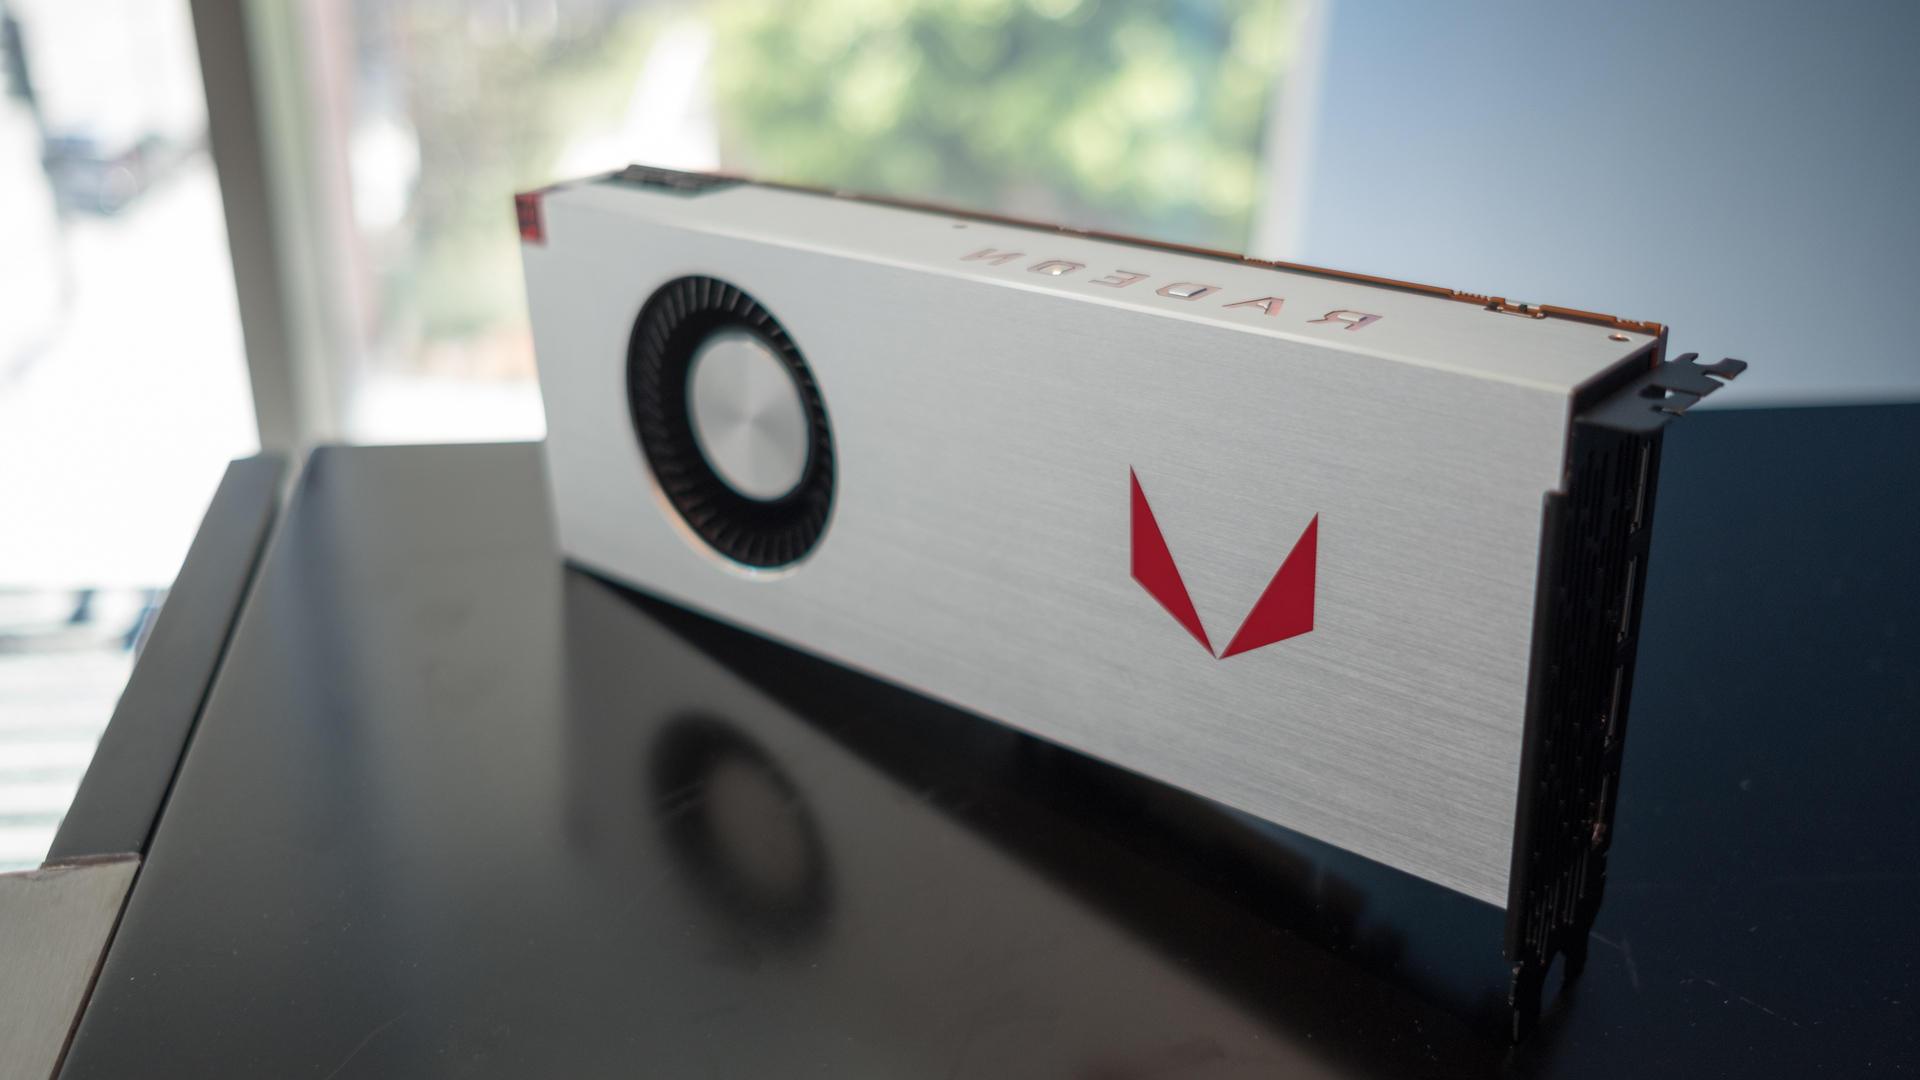 Tech & Science: AMD Radeon RX 590 could launch on November